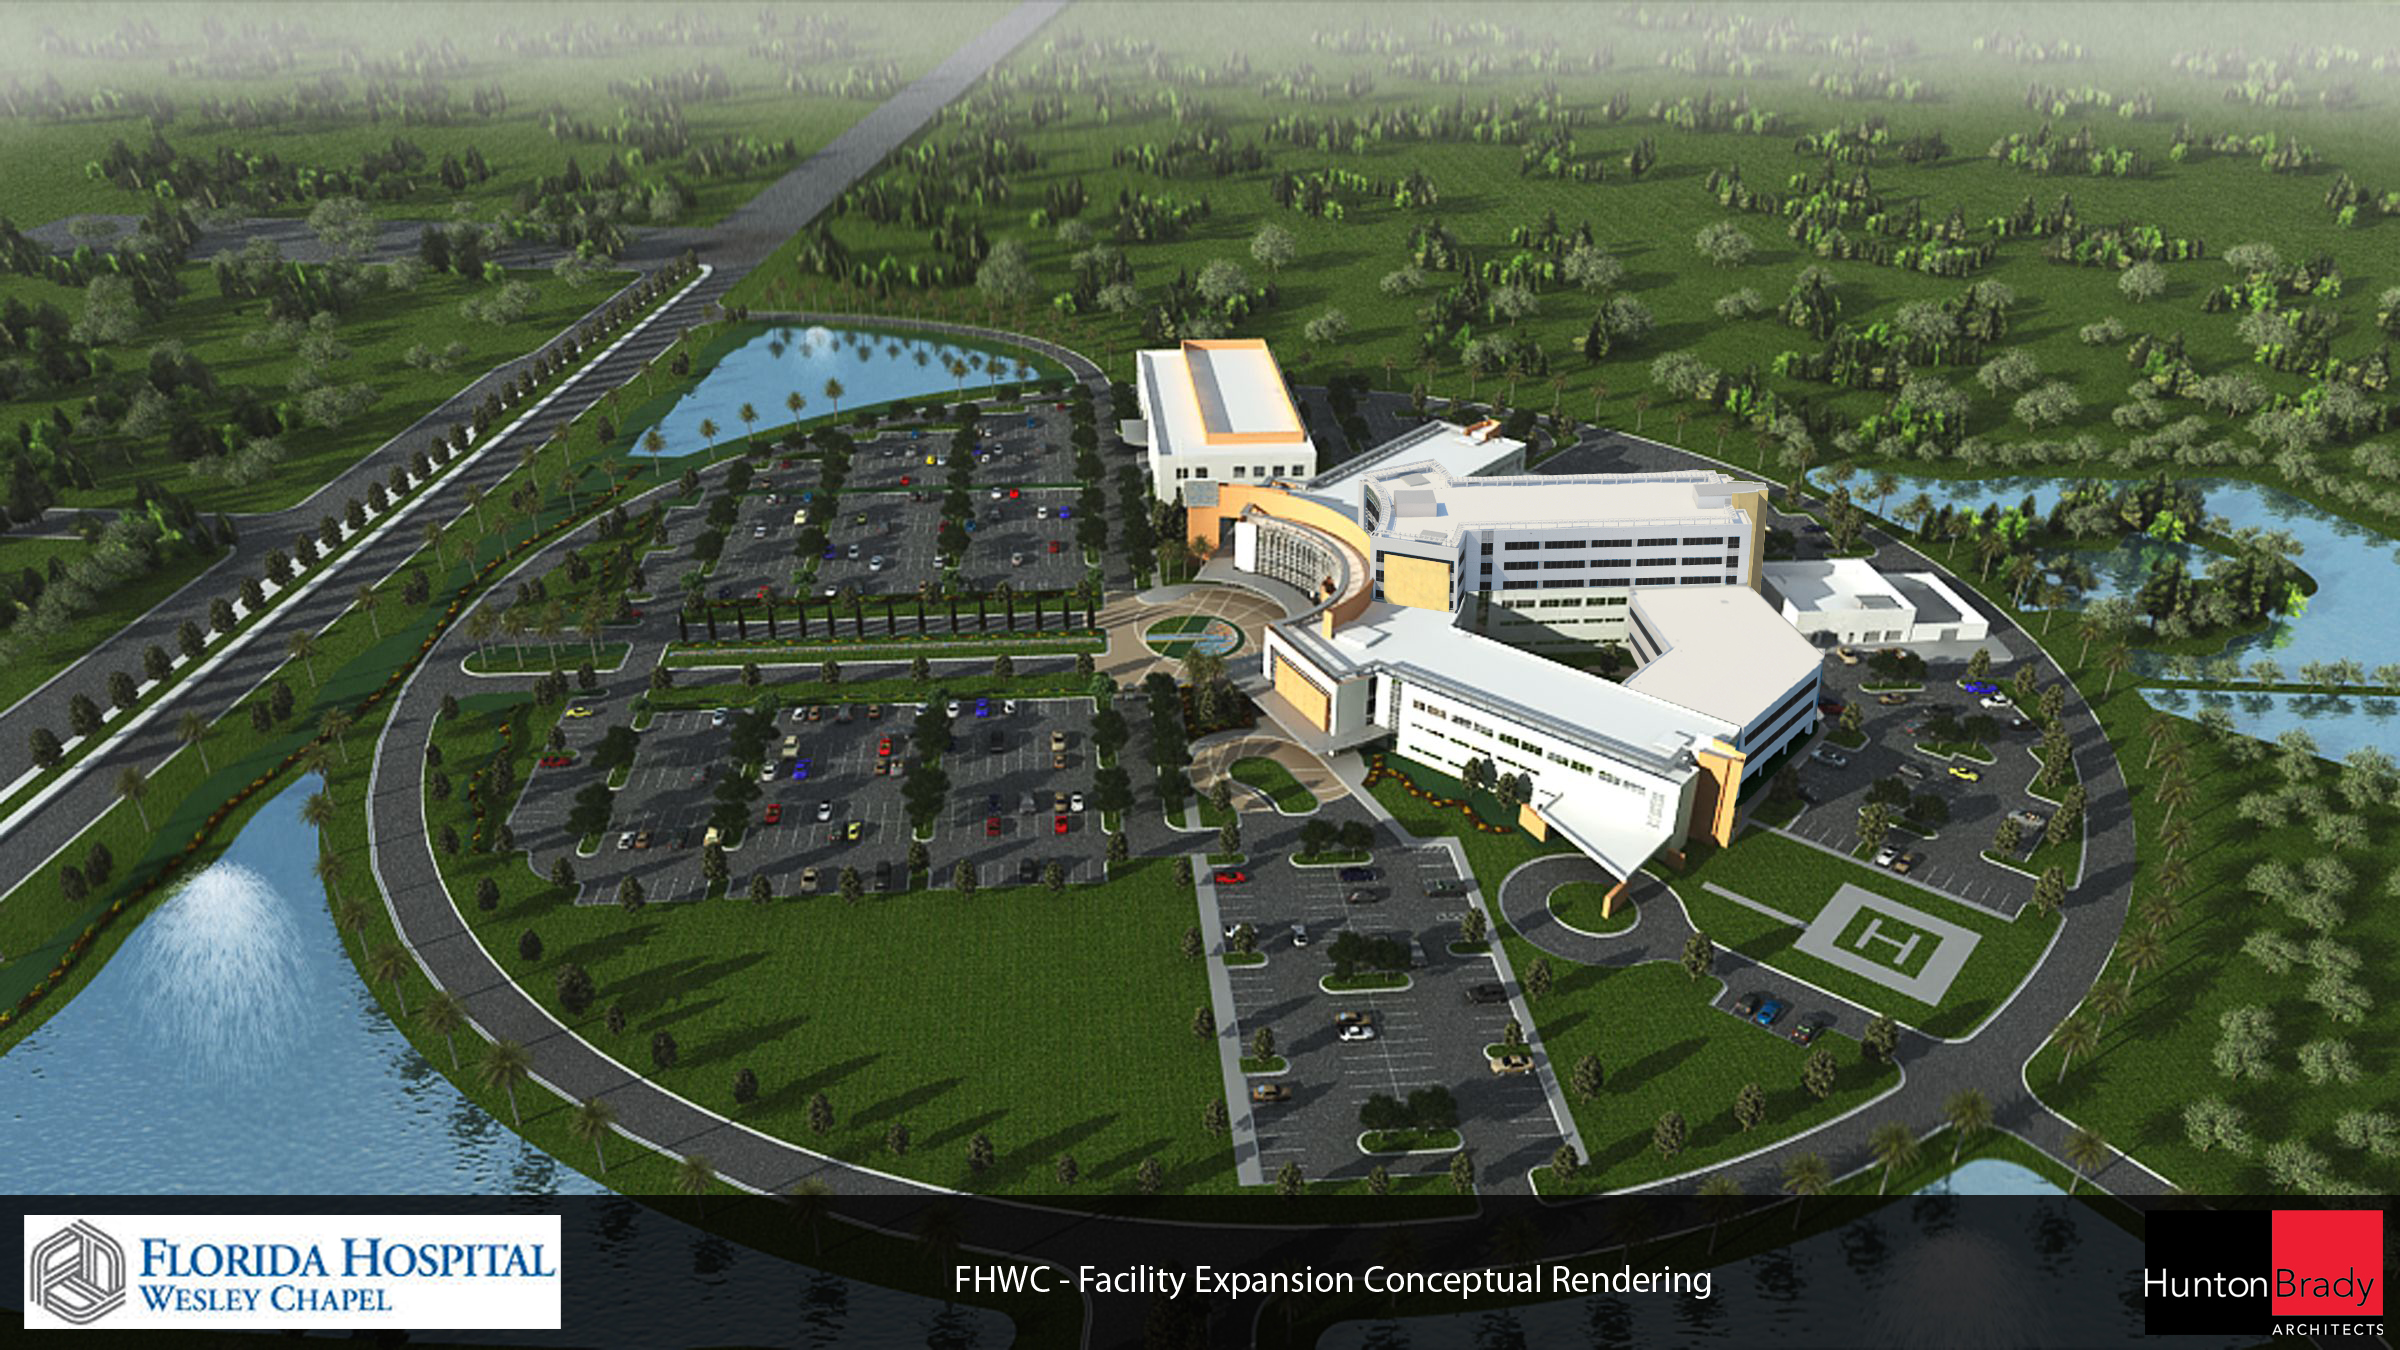 Florida Hospital Wesley Chapel Announces Plans To Expand